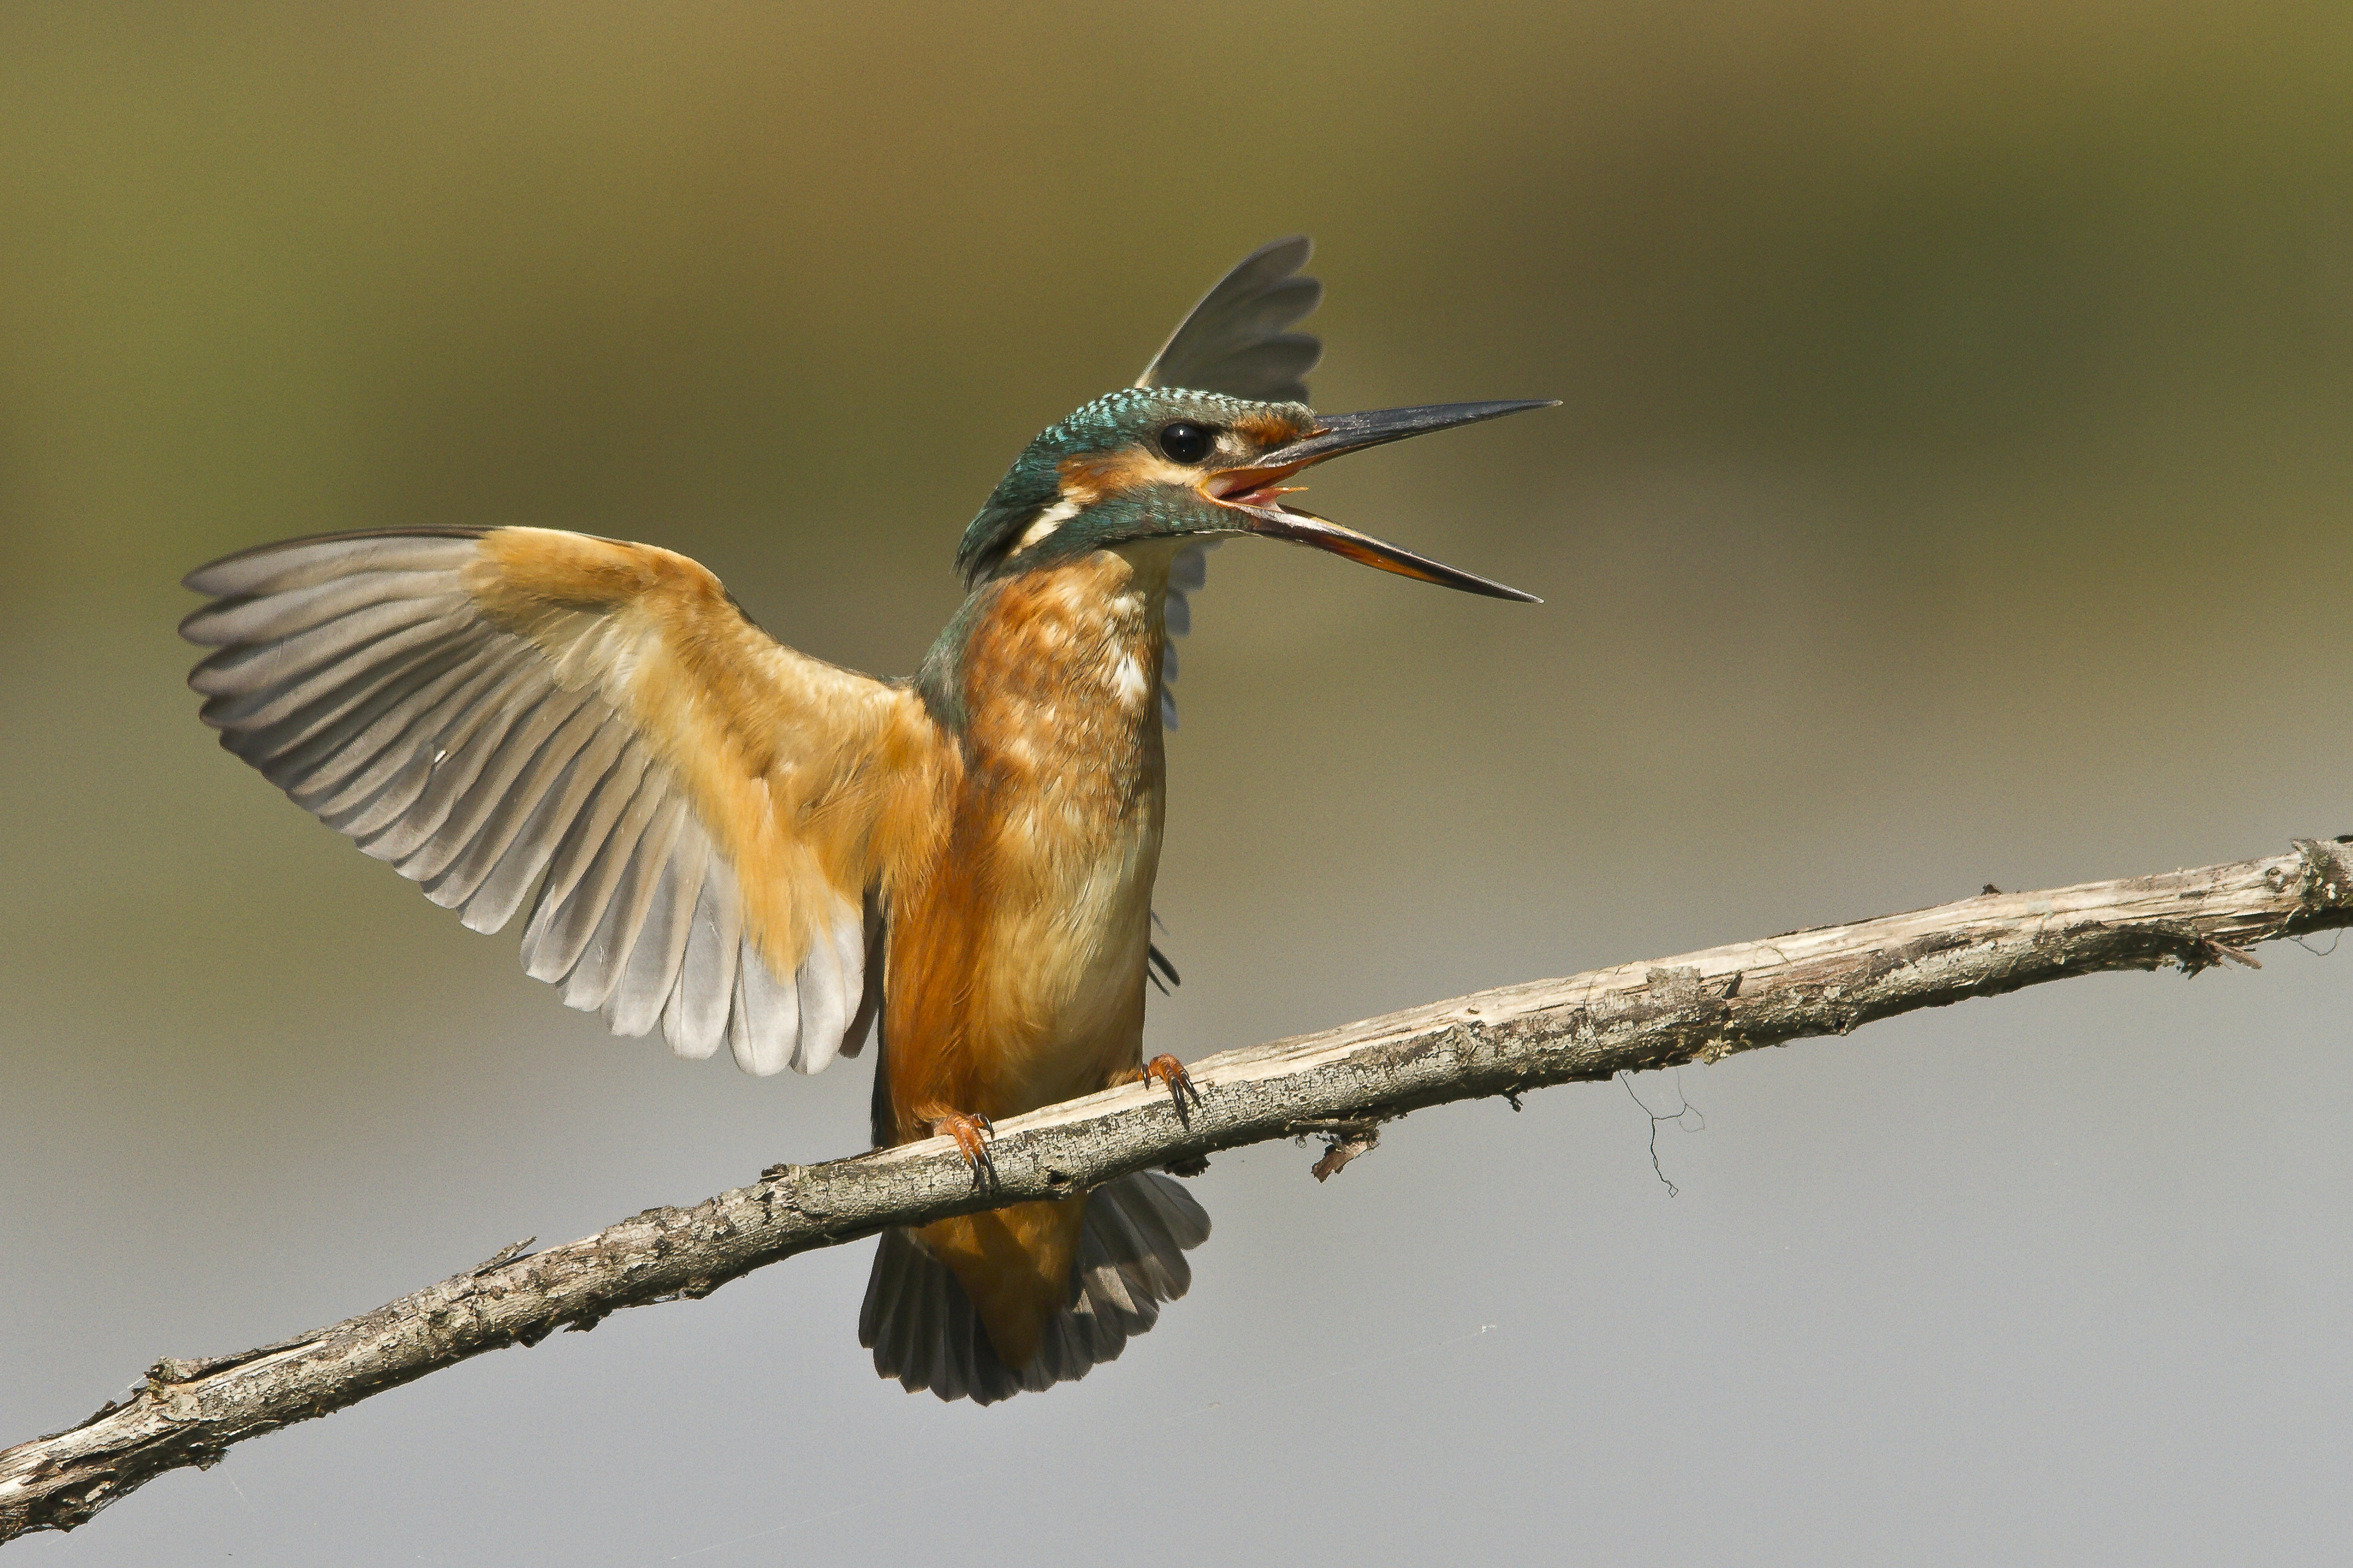 selective focus photograph of kingfisher perching on twig about to fly